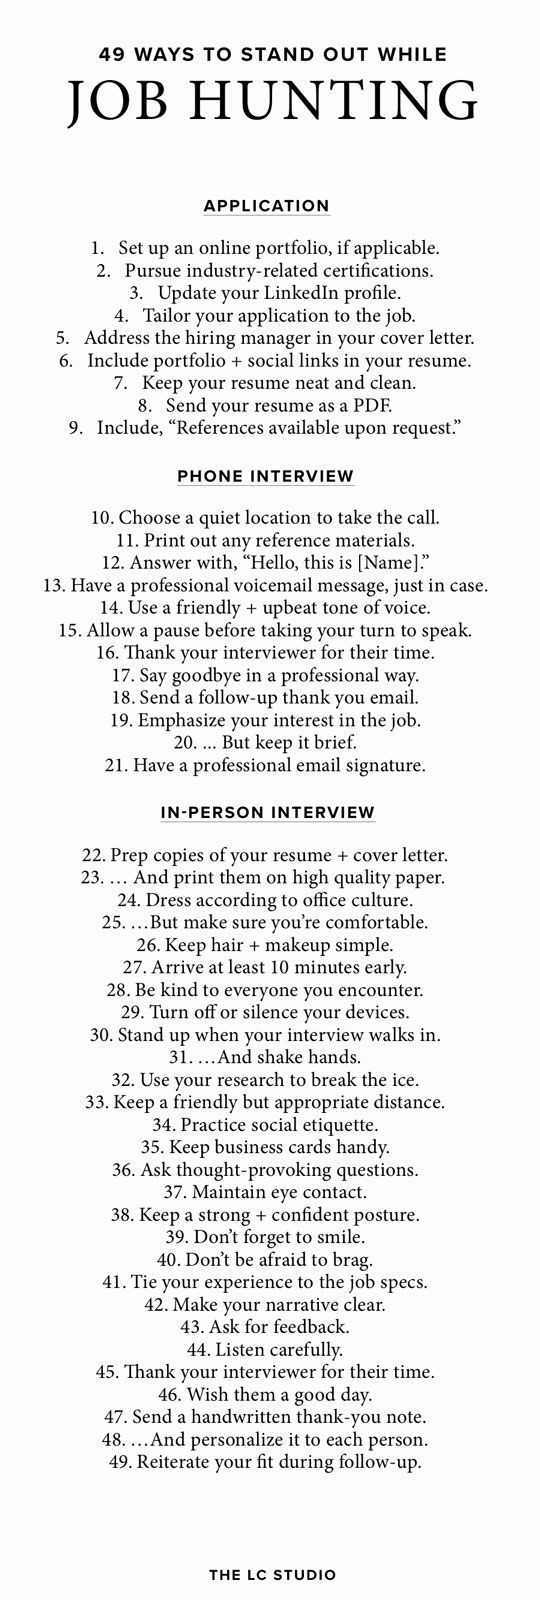 job hunting tips interview process job interview tips job interviews job info resume tips get real number one tips and tricks - Resume Tips And Tricks